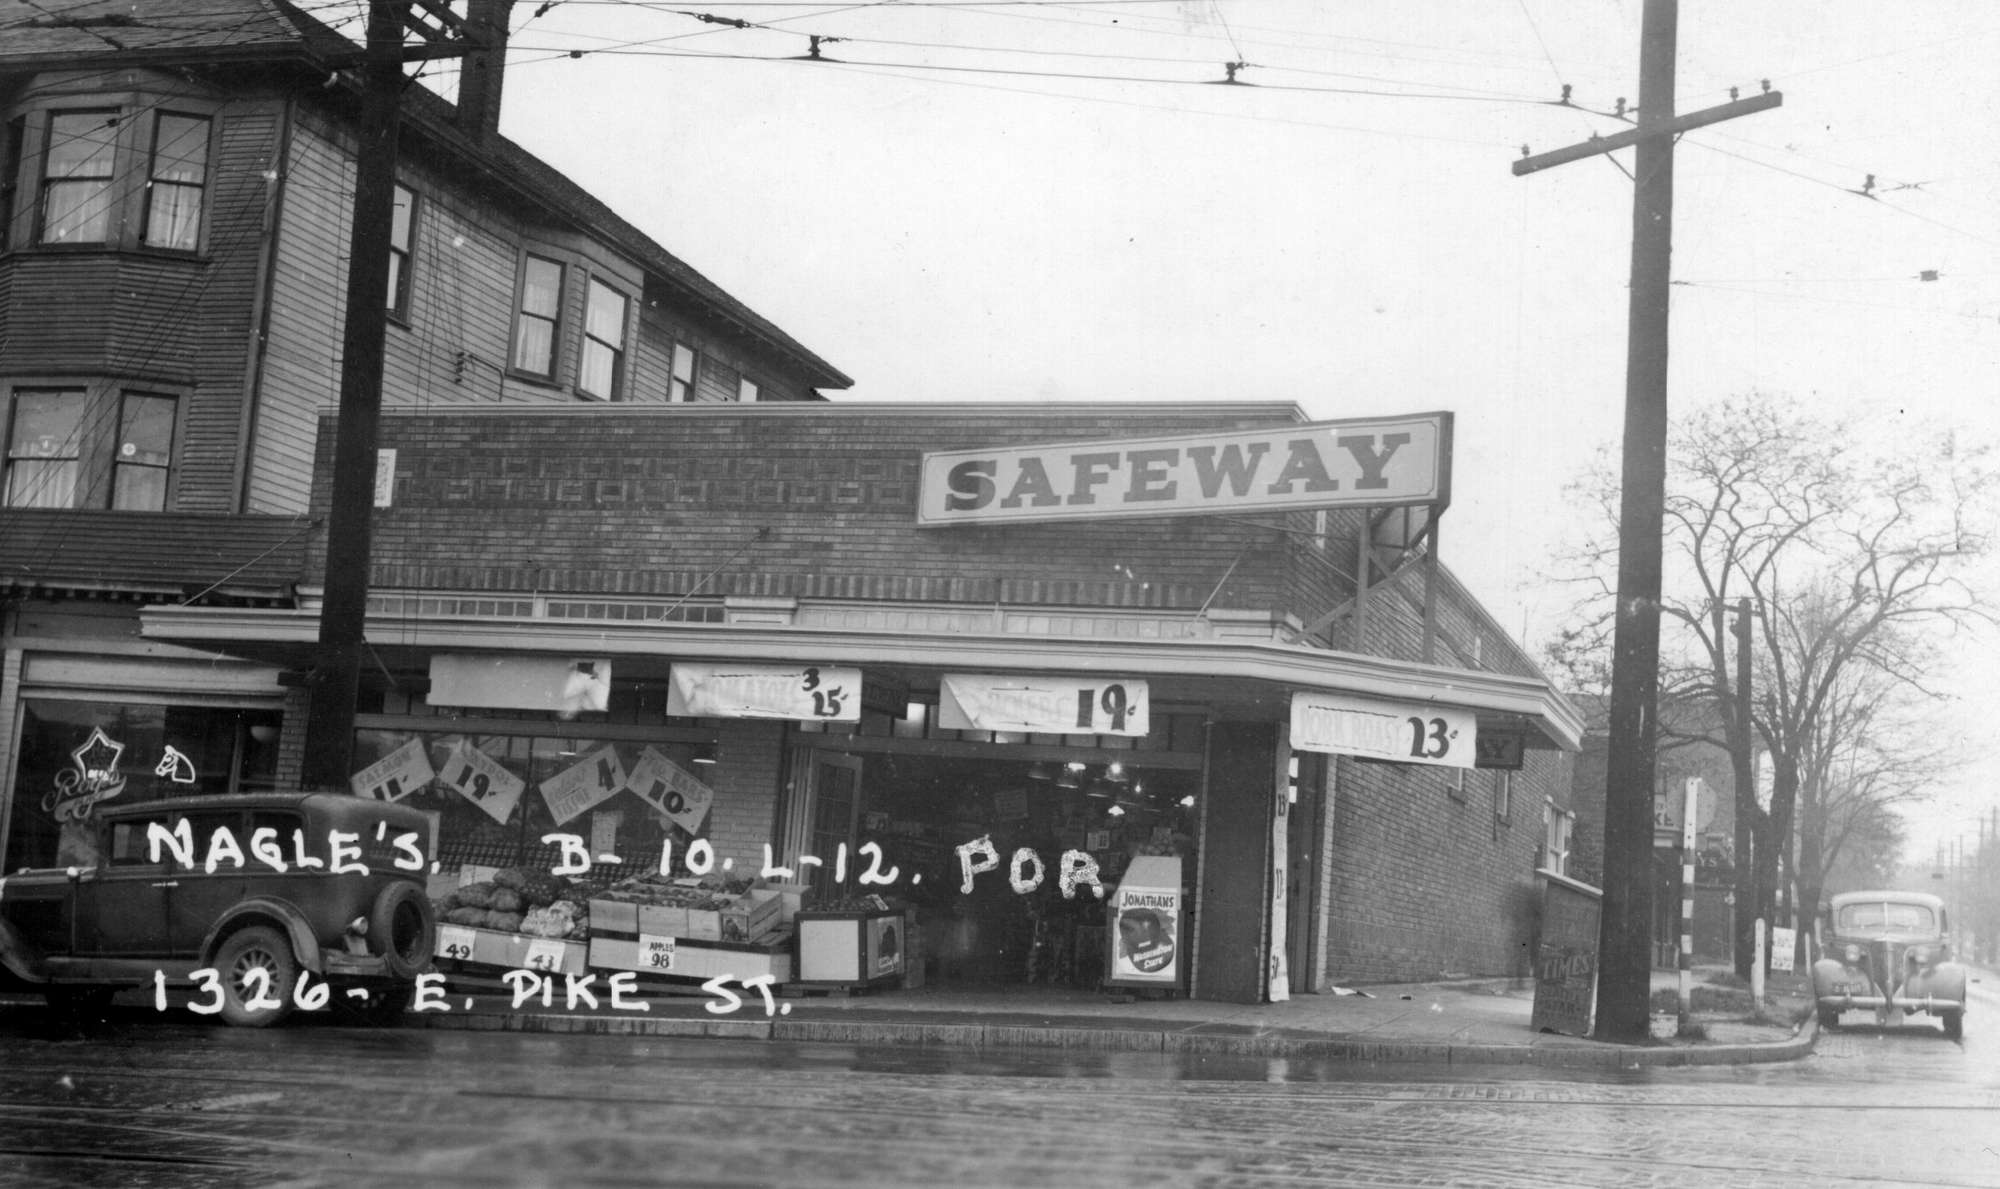 1326 East Pike St. Parcel 600300-0295. Courtesy Washington State Archives Puget Sound Regional Branch. & Capitol Hill Historical Society | The grocery revolution reaches ...